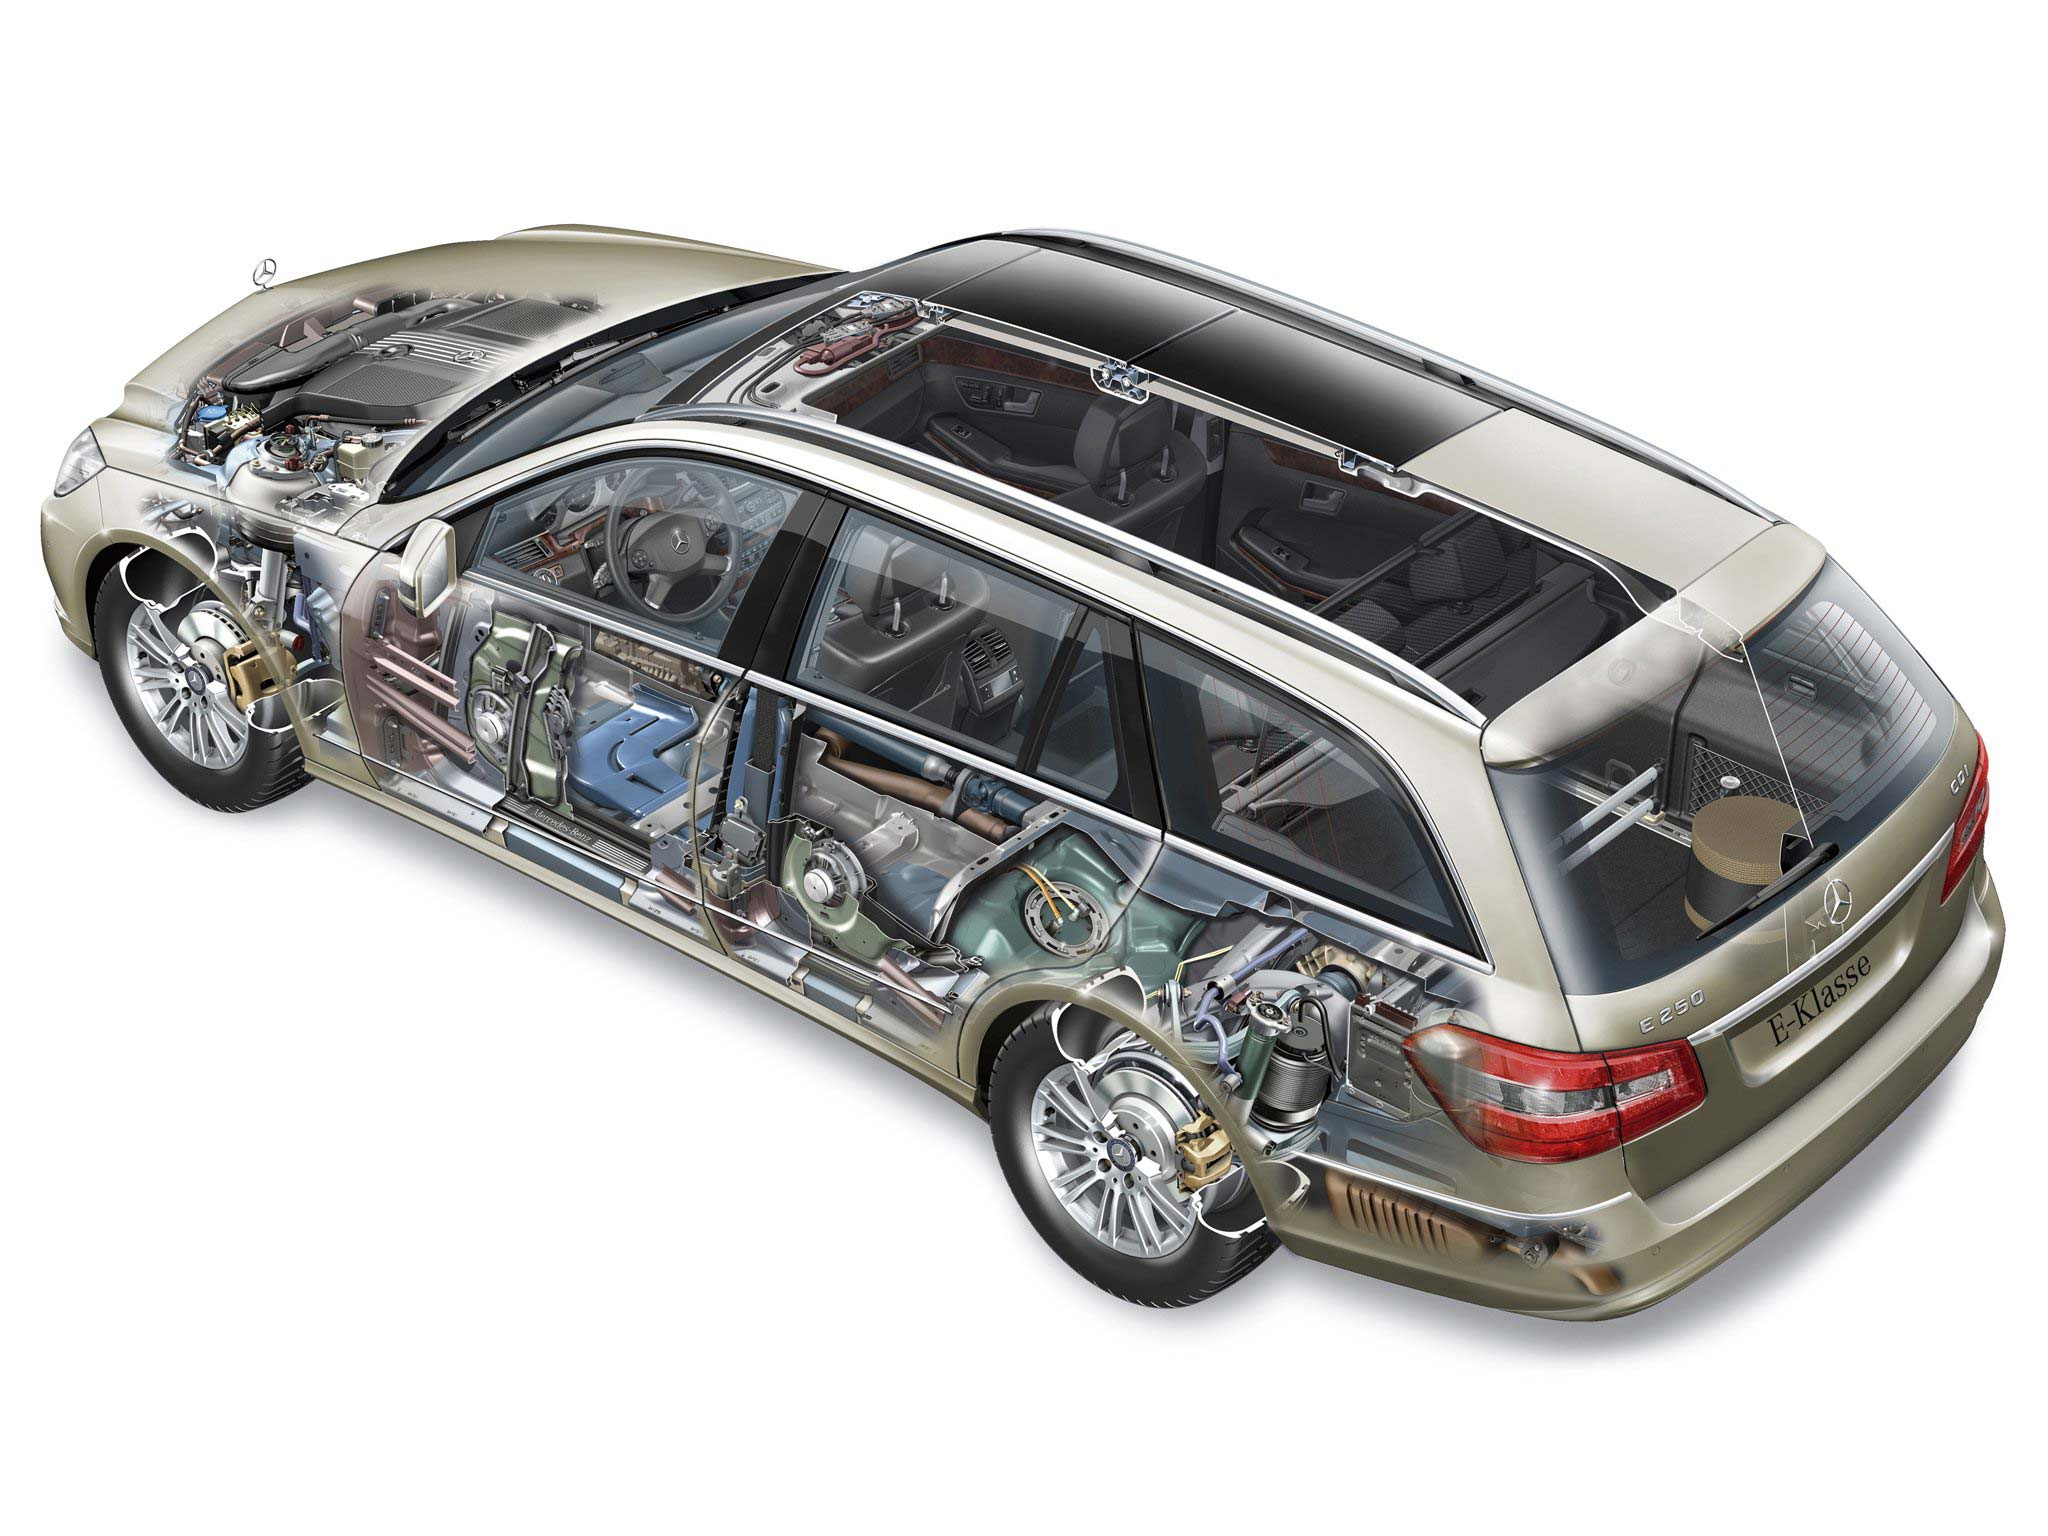 Mercedes-Benz E250 CDI Estate cutaway drawing